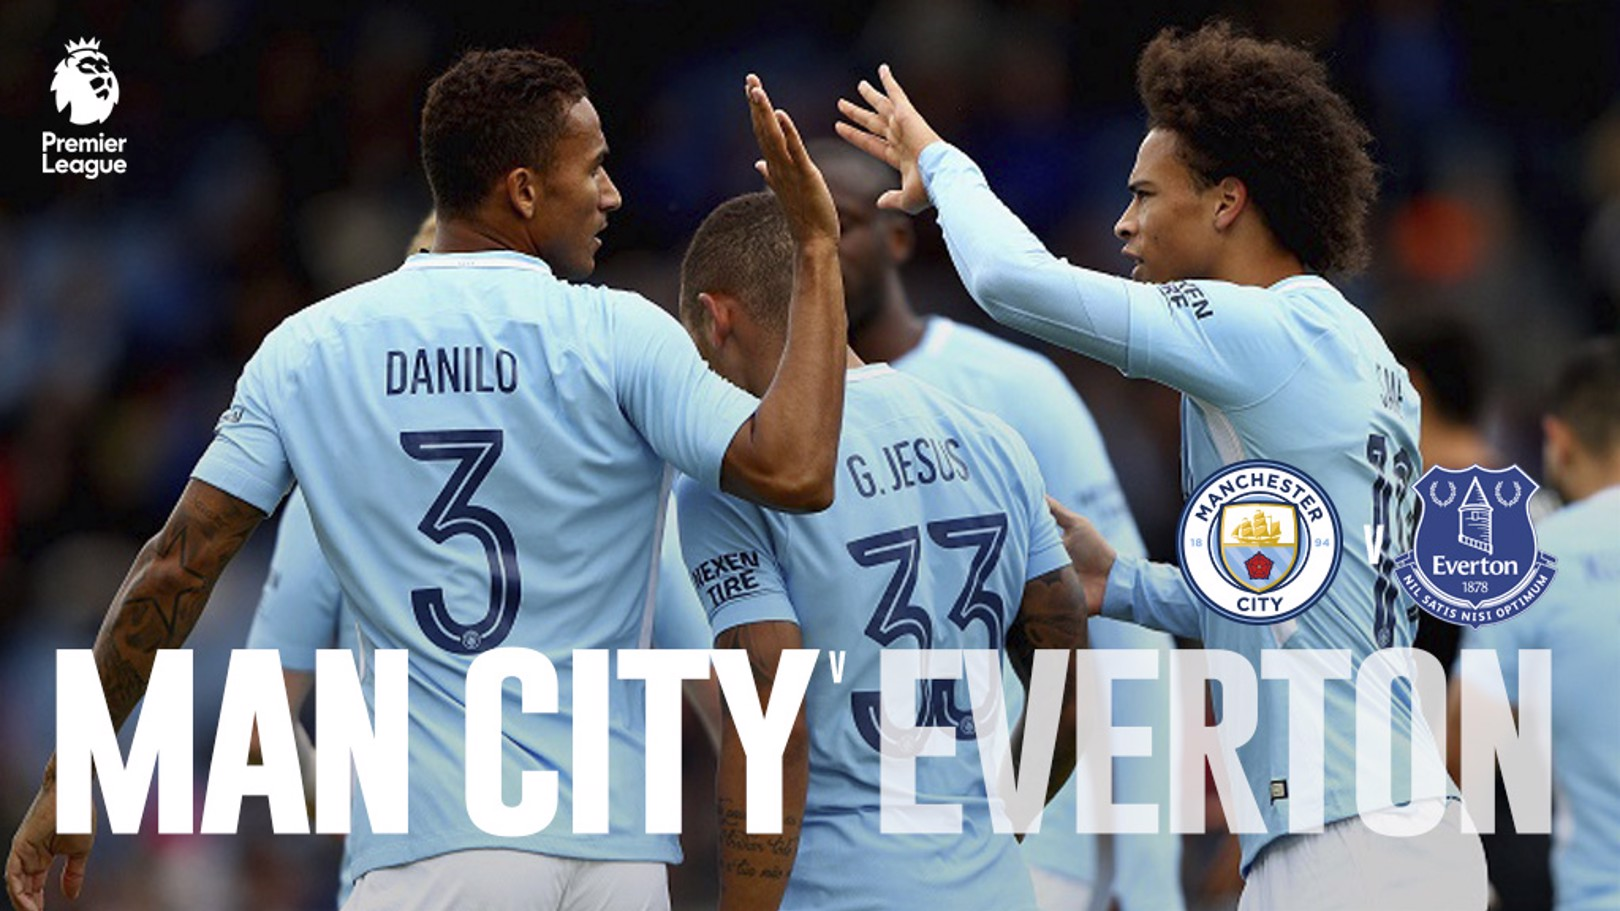 City - Everton: en directo